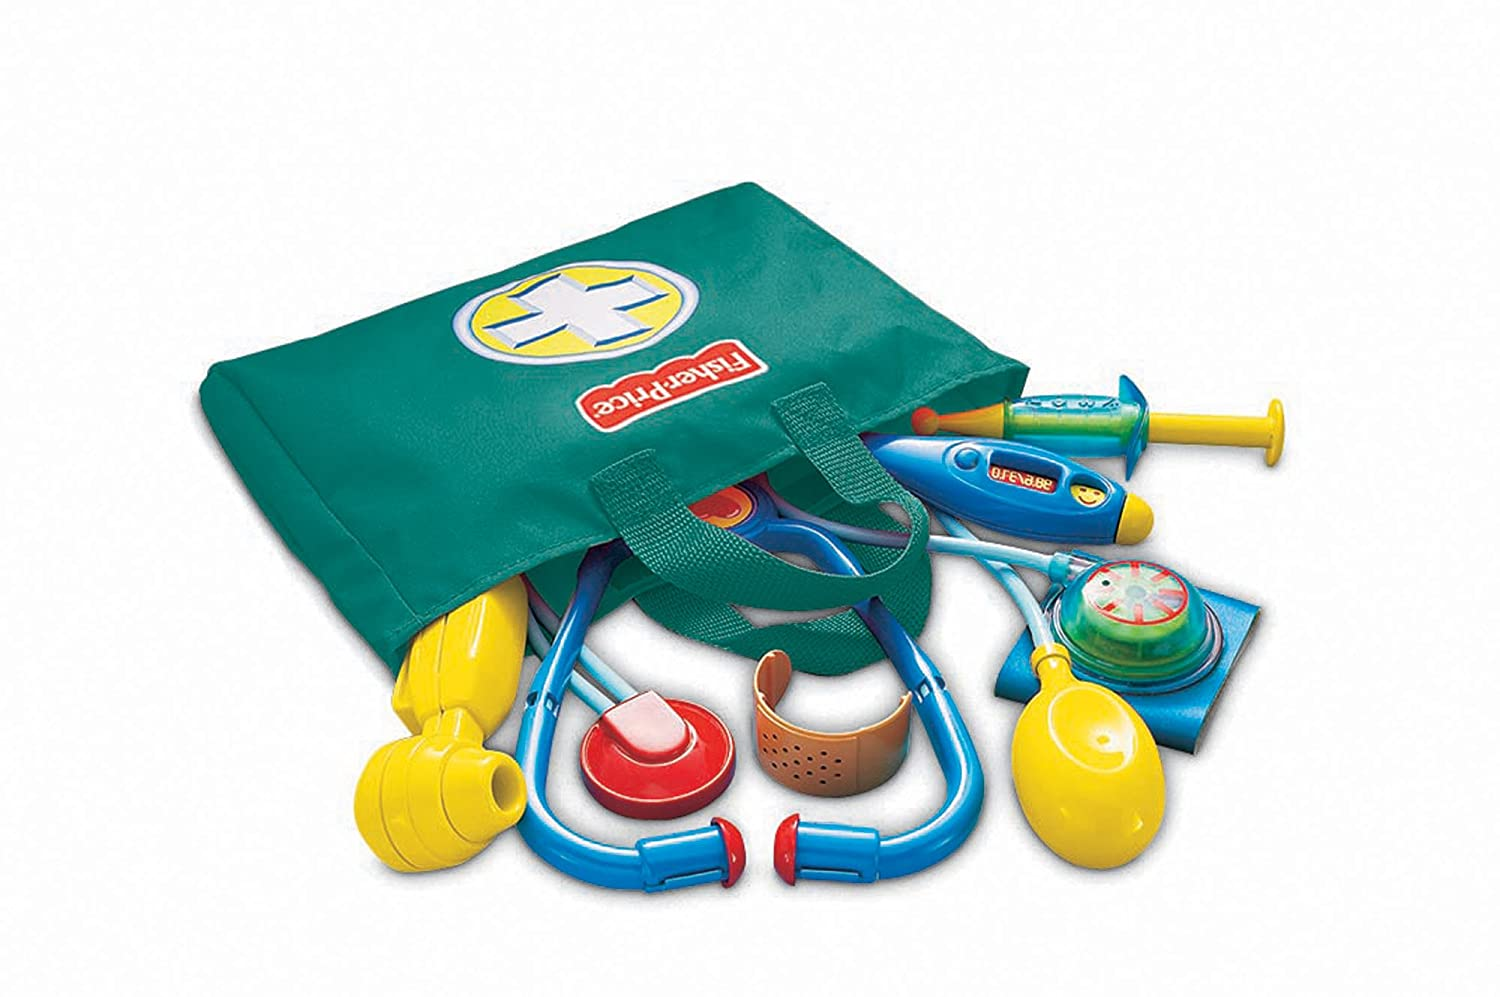 Toy Medical Kit : Fisher price medical kit equipment doctor nurse pretend